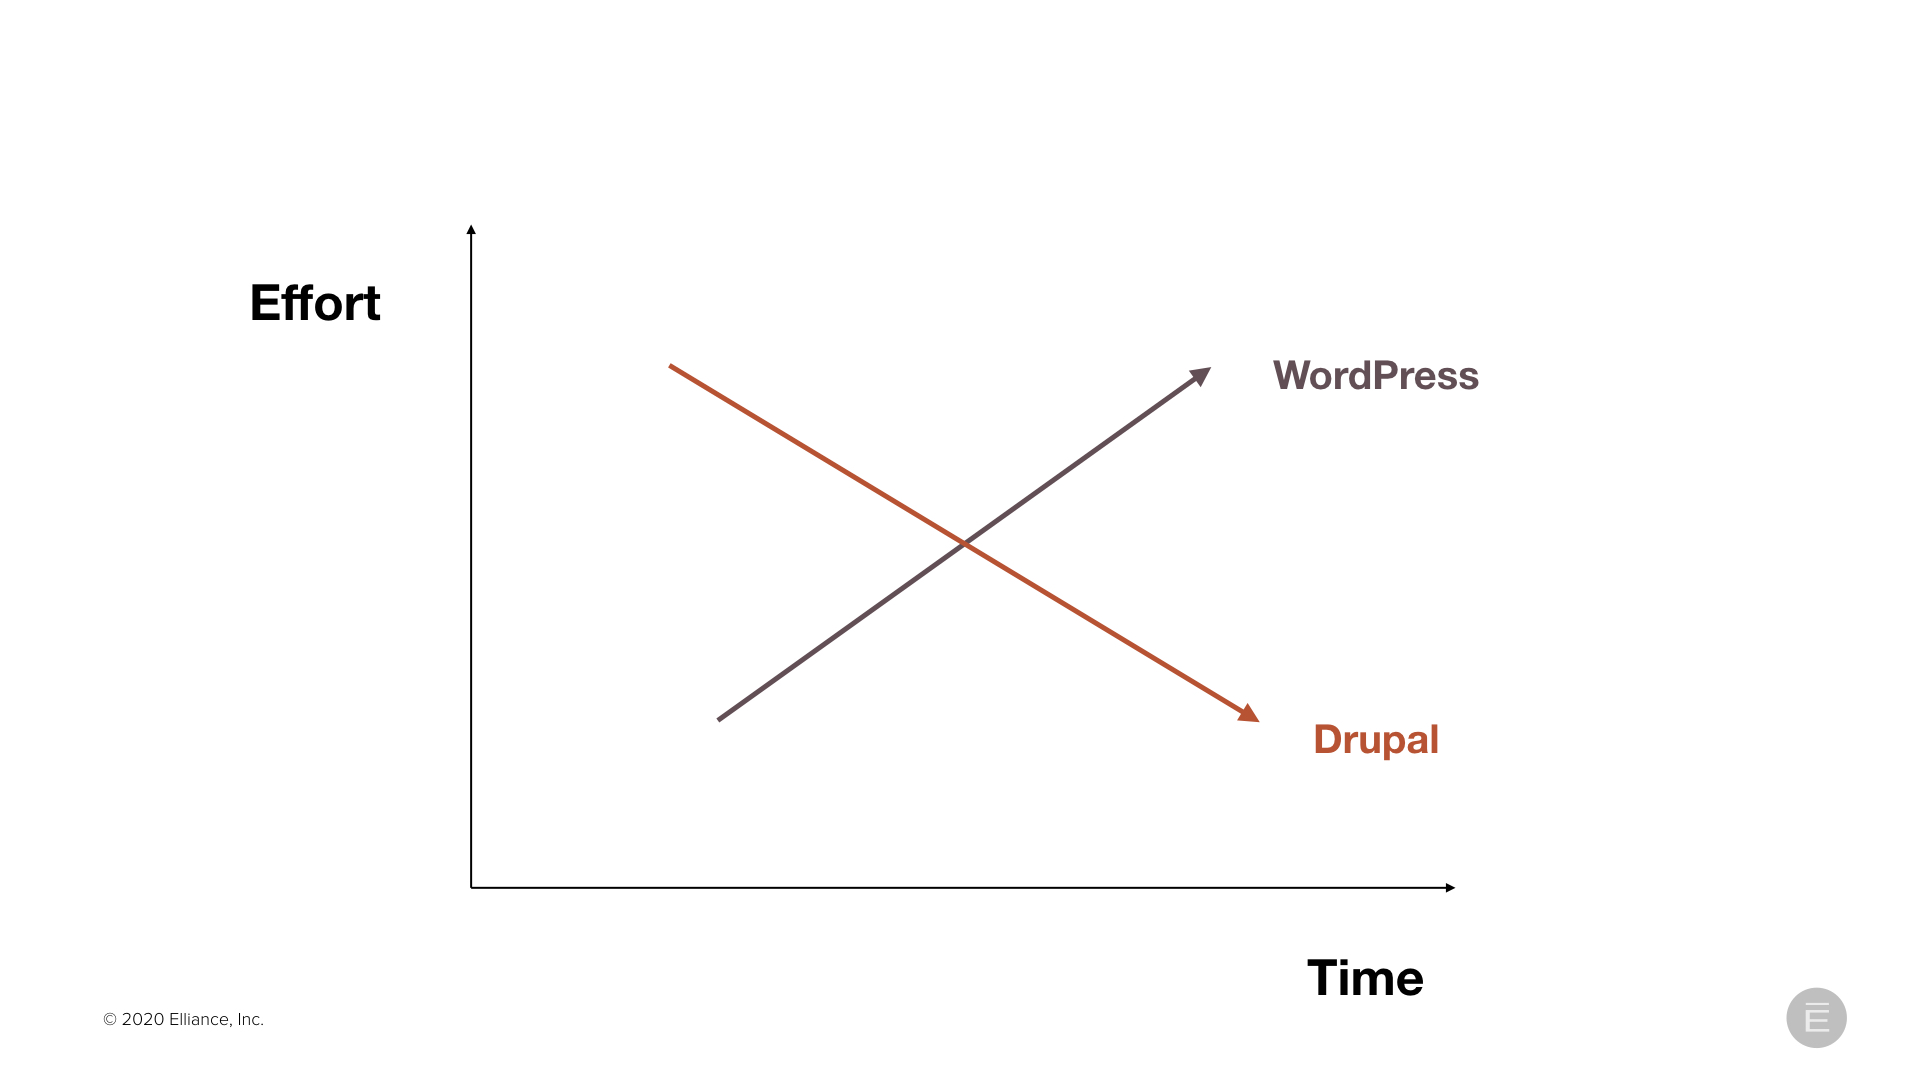 Drupal vs. WordPress: Effort Over Time